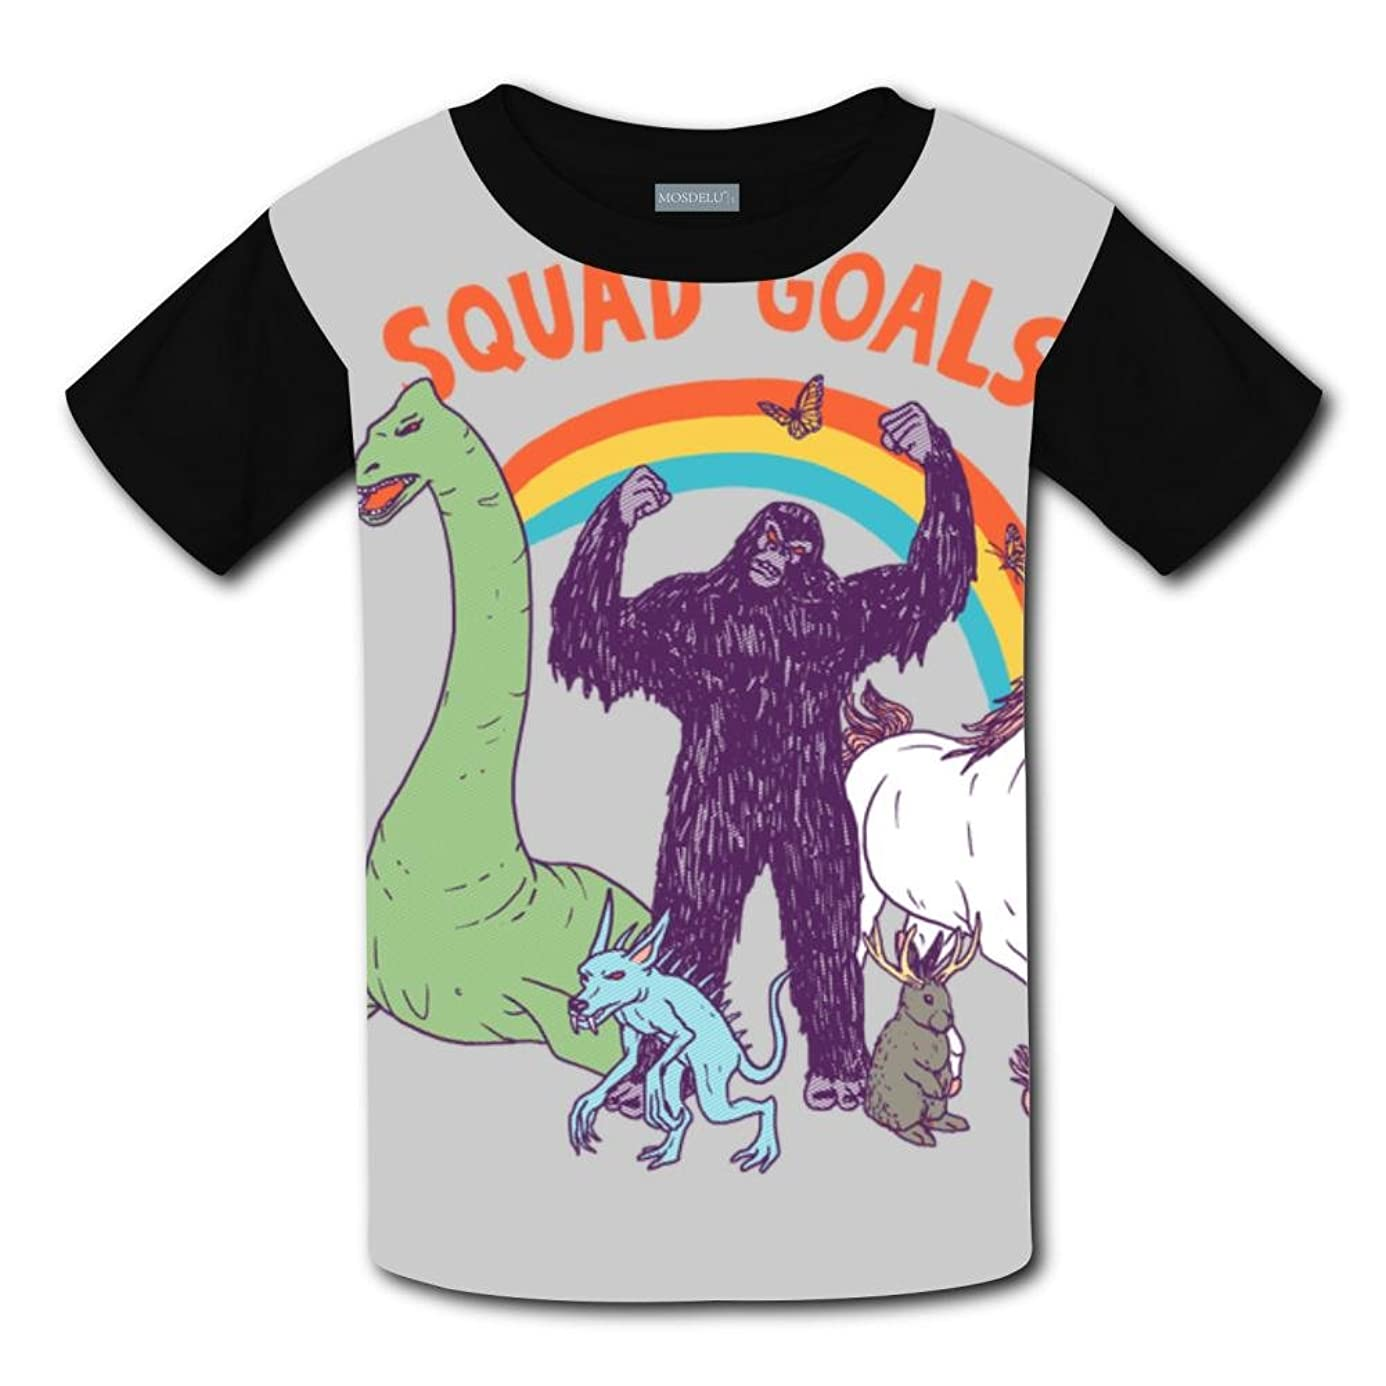 Mmm fight Squad Goals Cryptids Light Weight Tee Shirts 2017 The Latest Version for Girlsfree Postage